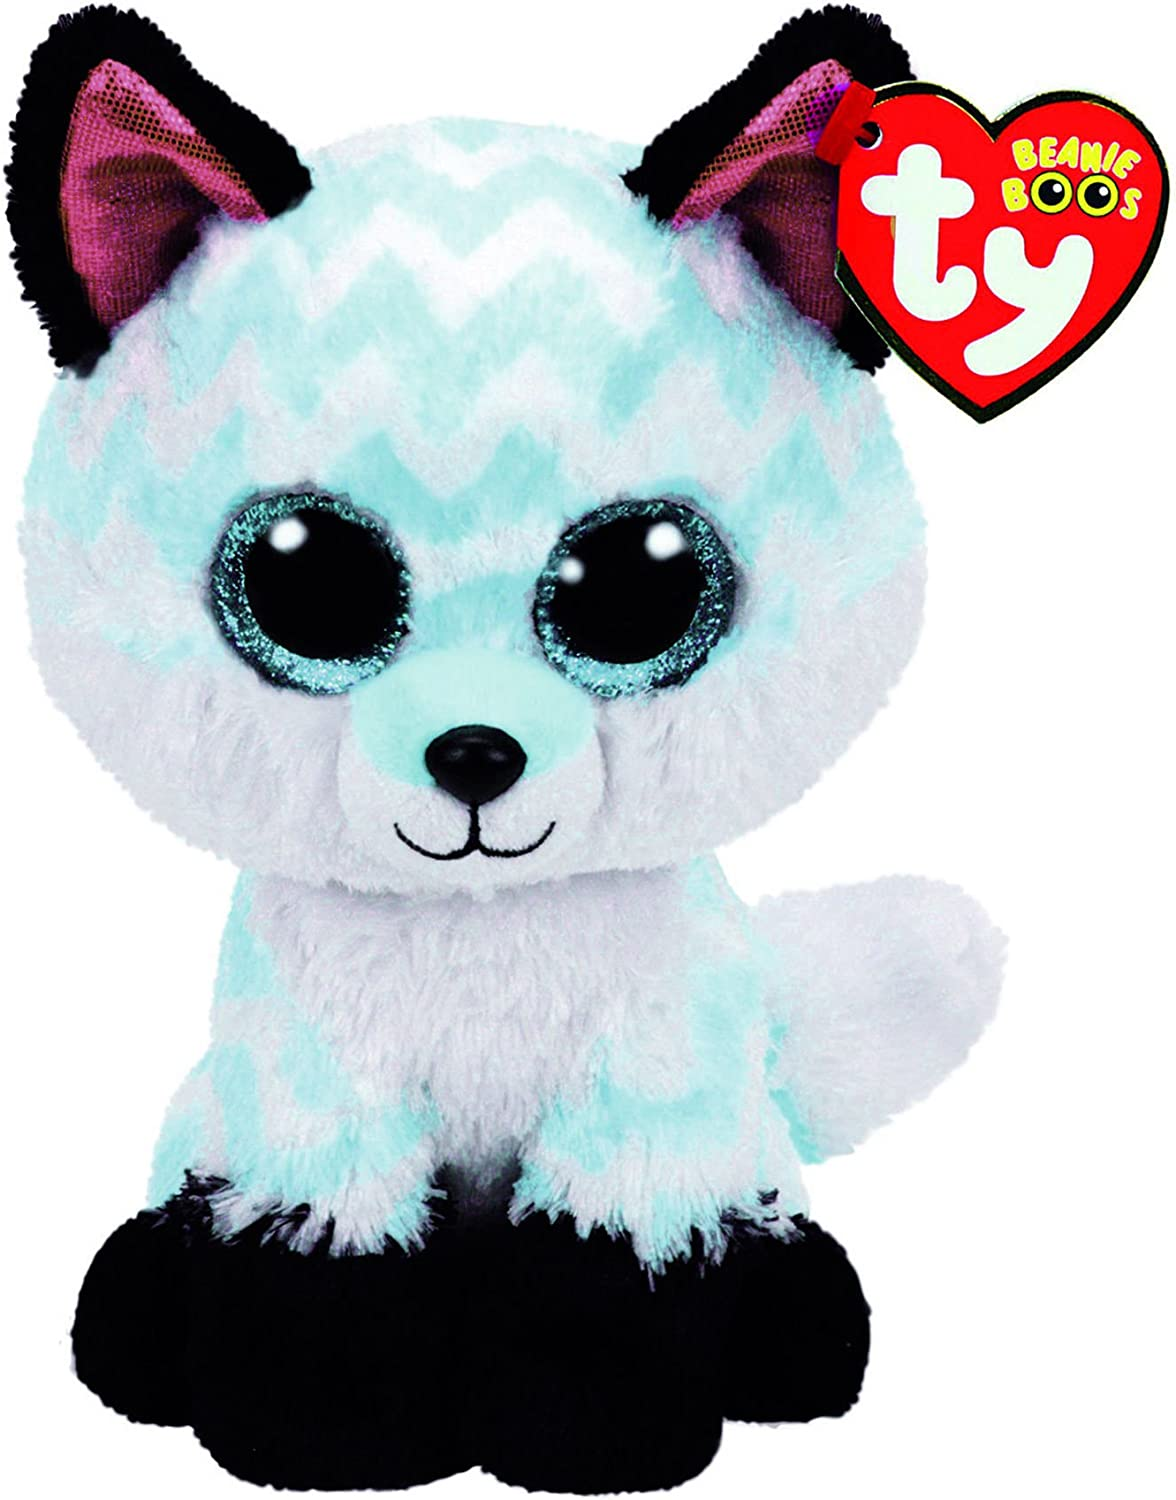 Alaska Stuffed Animals, Amazon Com Claire S Official Ty Beanie Boo Piper The Chevron Fox Soft Plush Toy For Girls Turquoise And White Small 6 Inch Ty Beanies Clothing